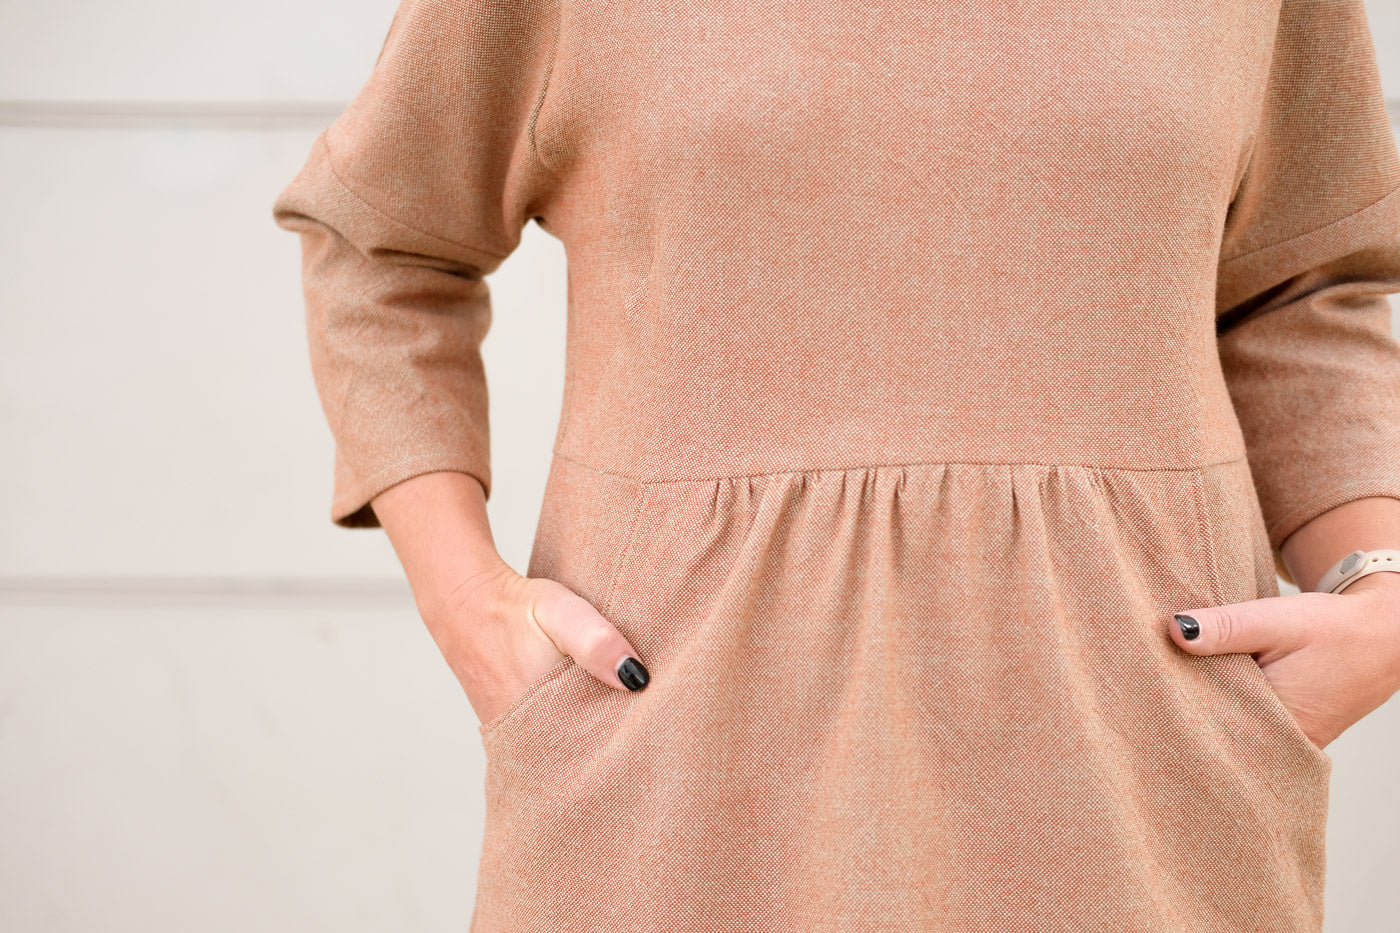 Detail of the waist and pockets of the Fen dress. It shows a close up of the subtly textured, plain weave fabric, and Jaime's hands in the waist pockets.